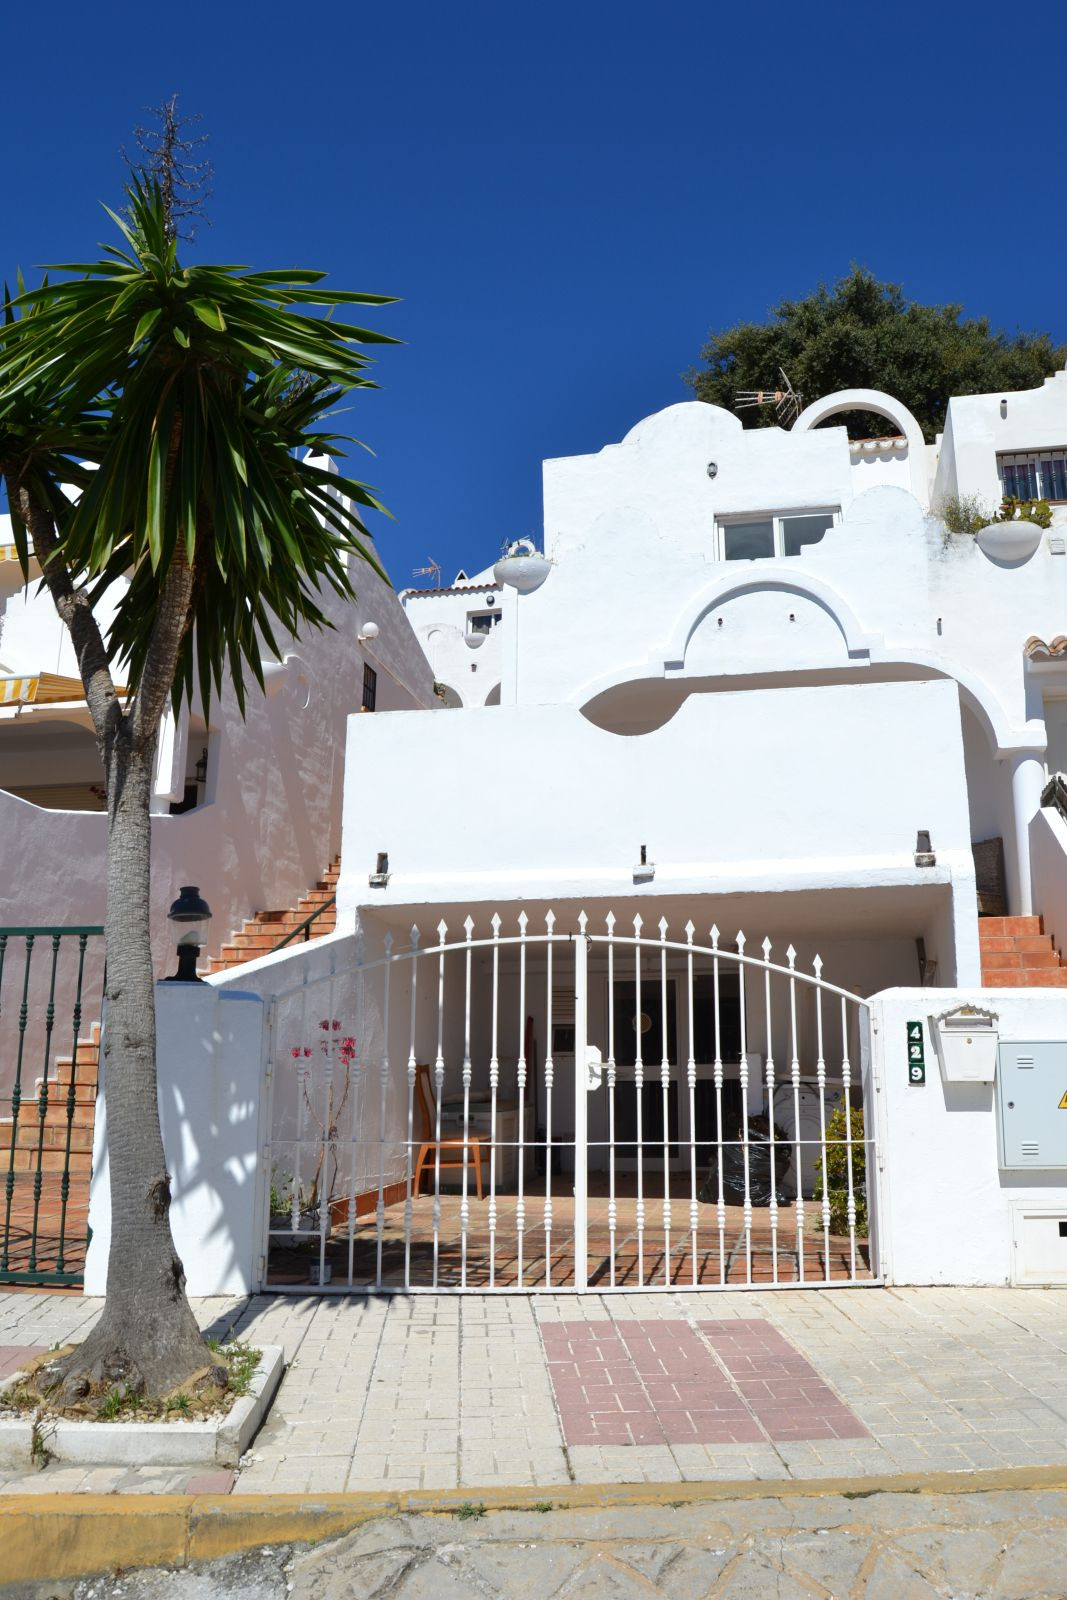 3 bedroomTownhouse set in a tranquil street overlooking the golf course and views of the sea . Gated,Spain